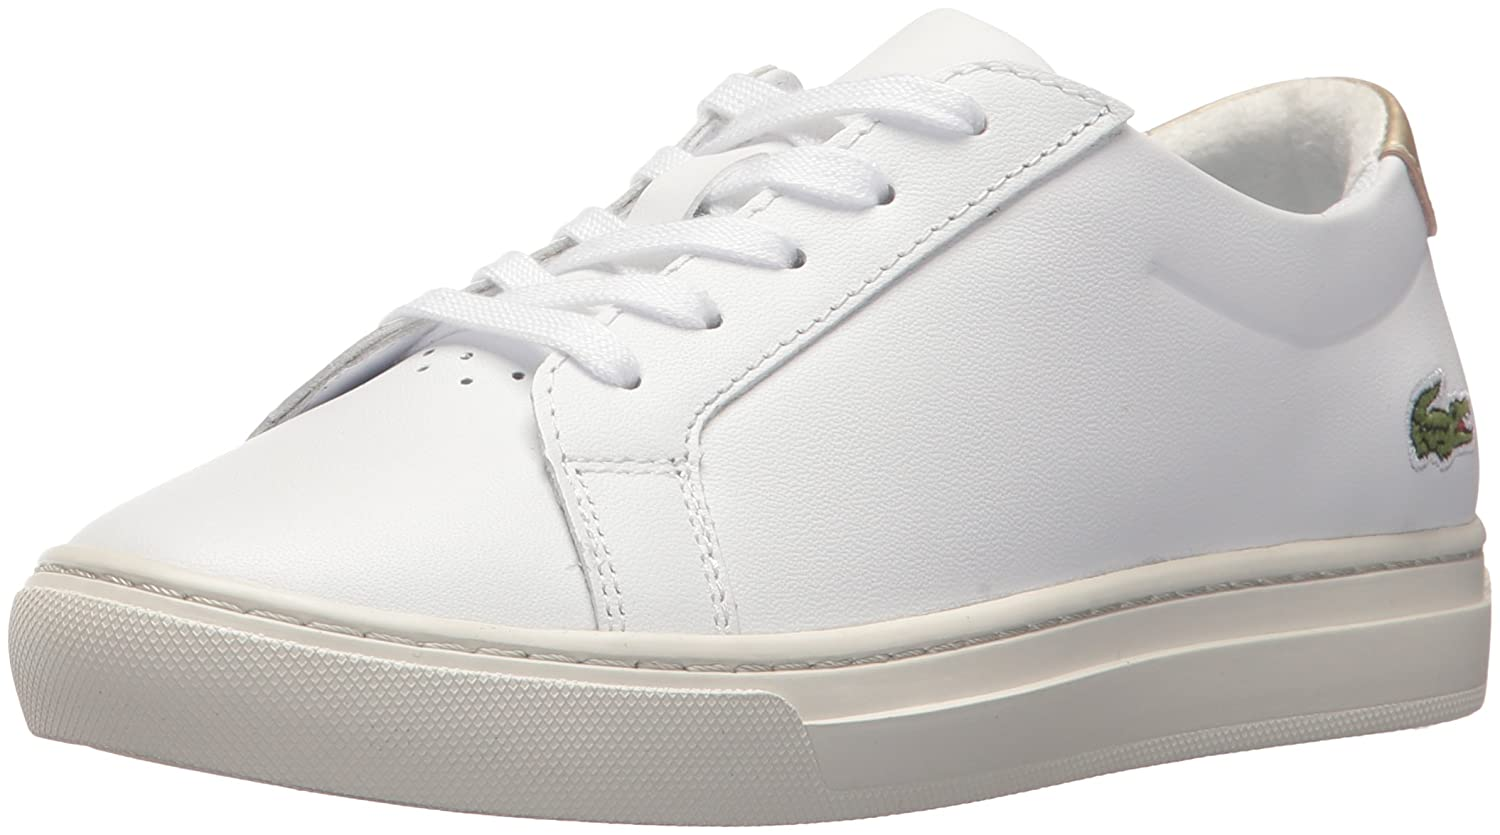 4fba8c2820410 Lacoste Kids  L.12.12 Sneakers  Buy Online at Low Prices in India -  Amazon.in